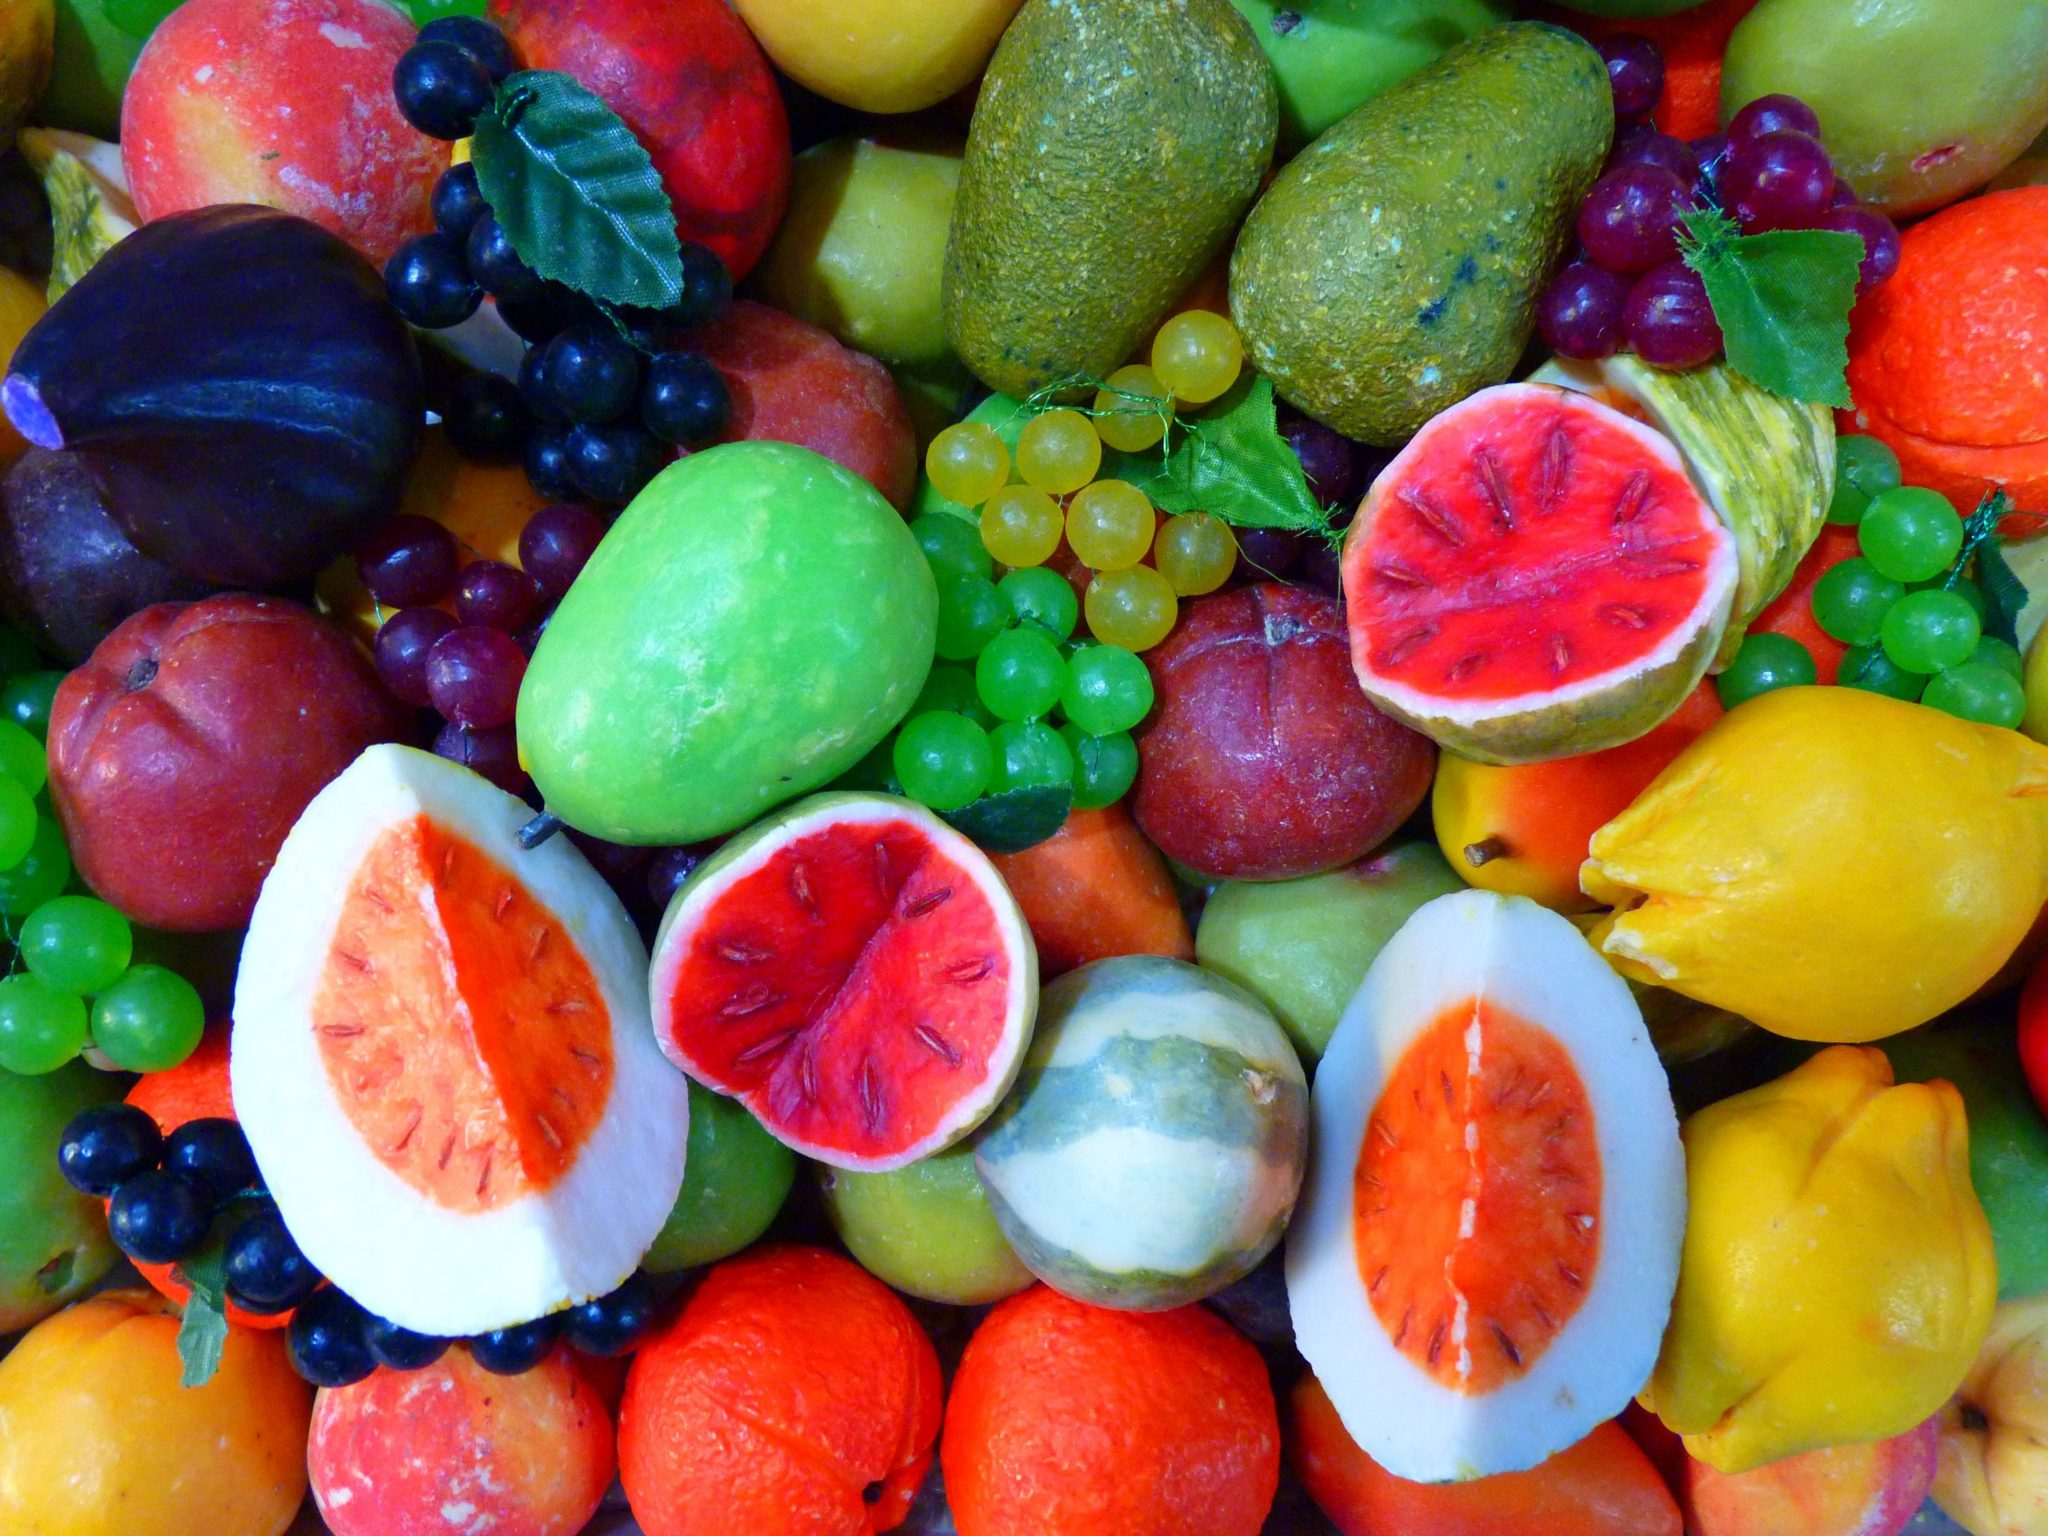 A picture of different fruits